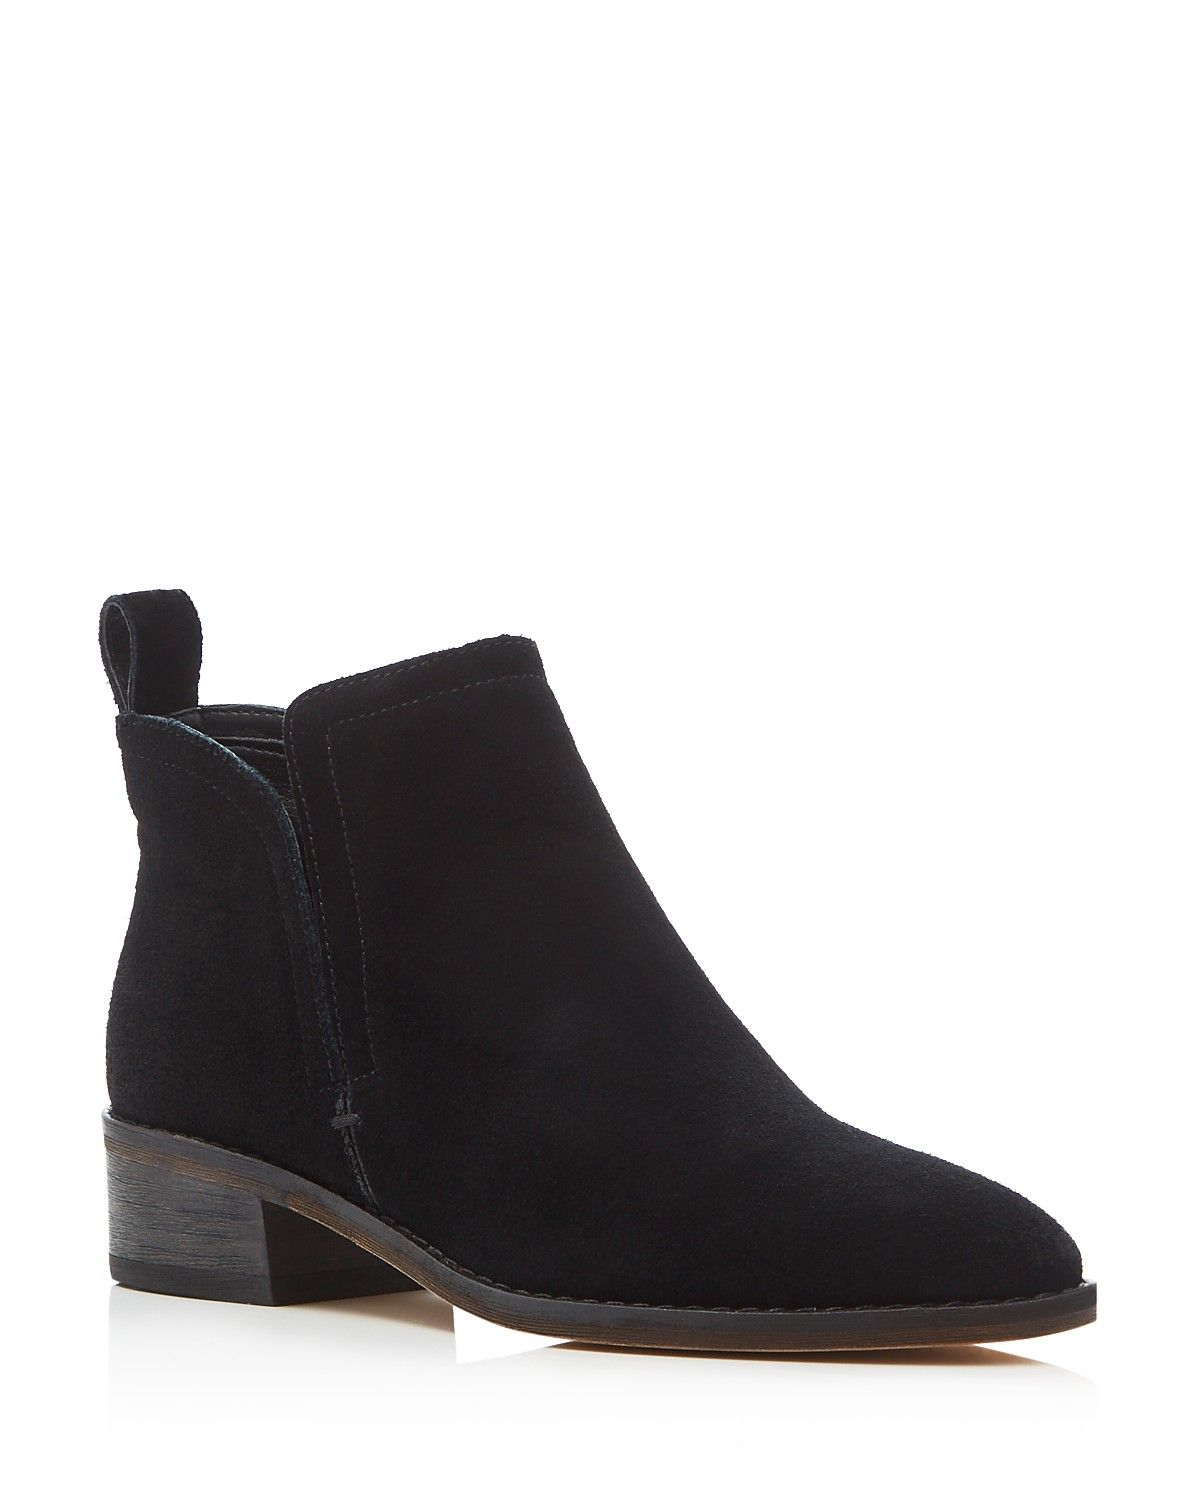 These Slip-on Suede Booties Feel Laid-back And Lived-in